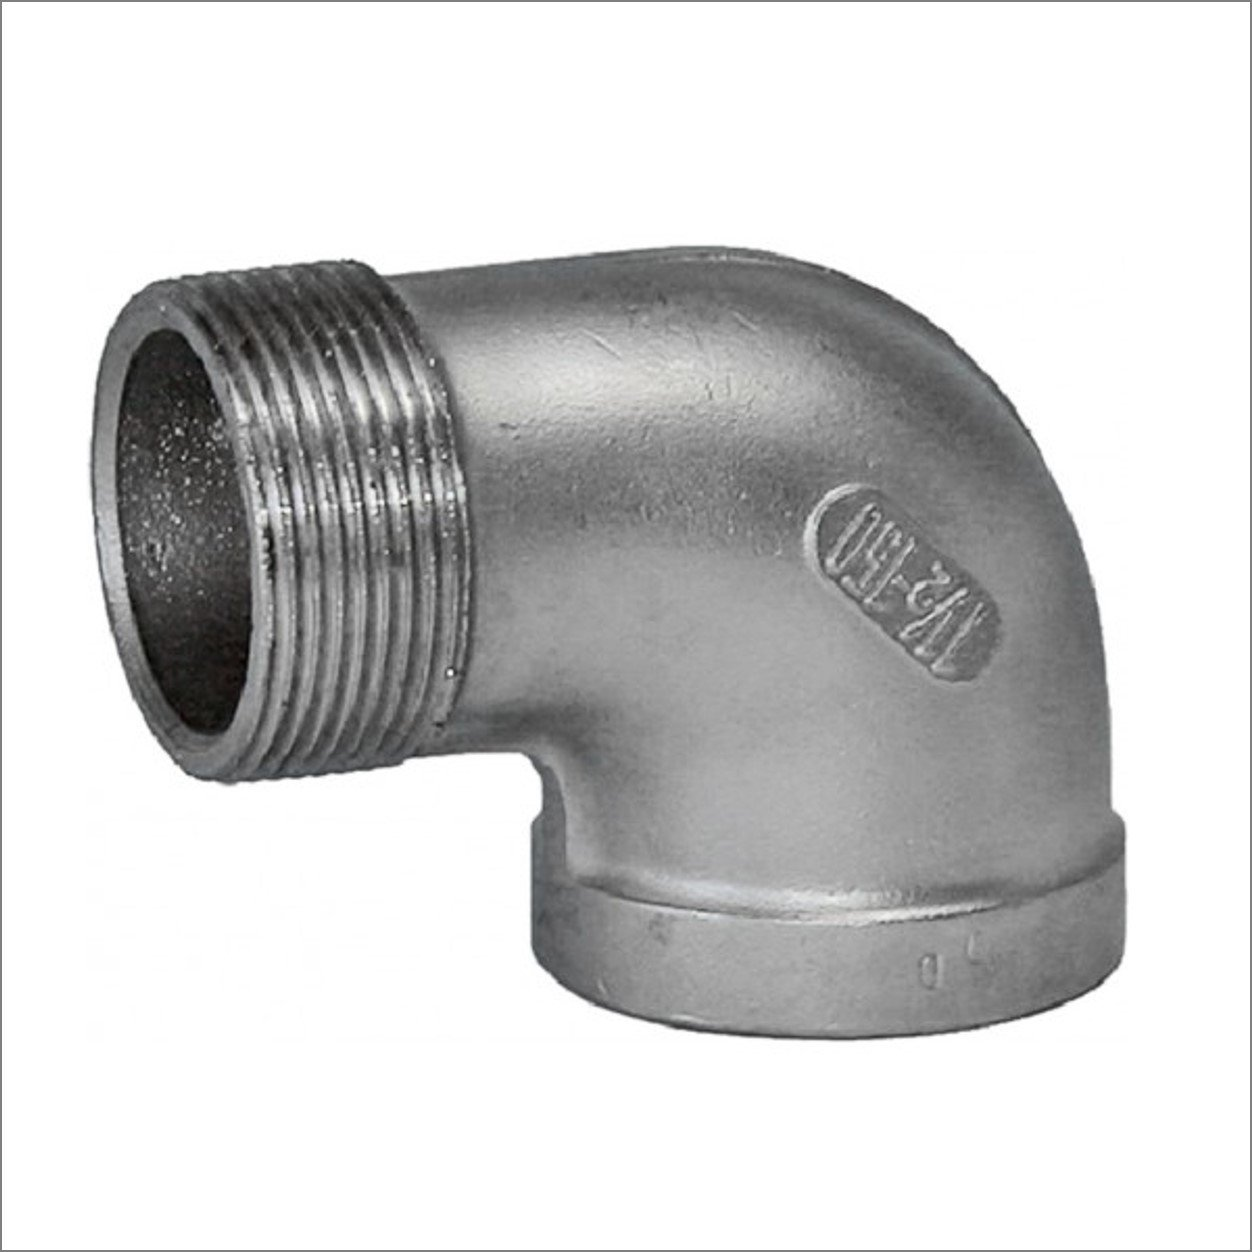 Street Elbow 90 Degree 316L Stainless Steel